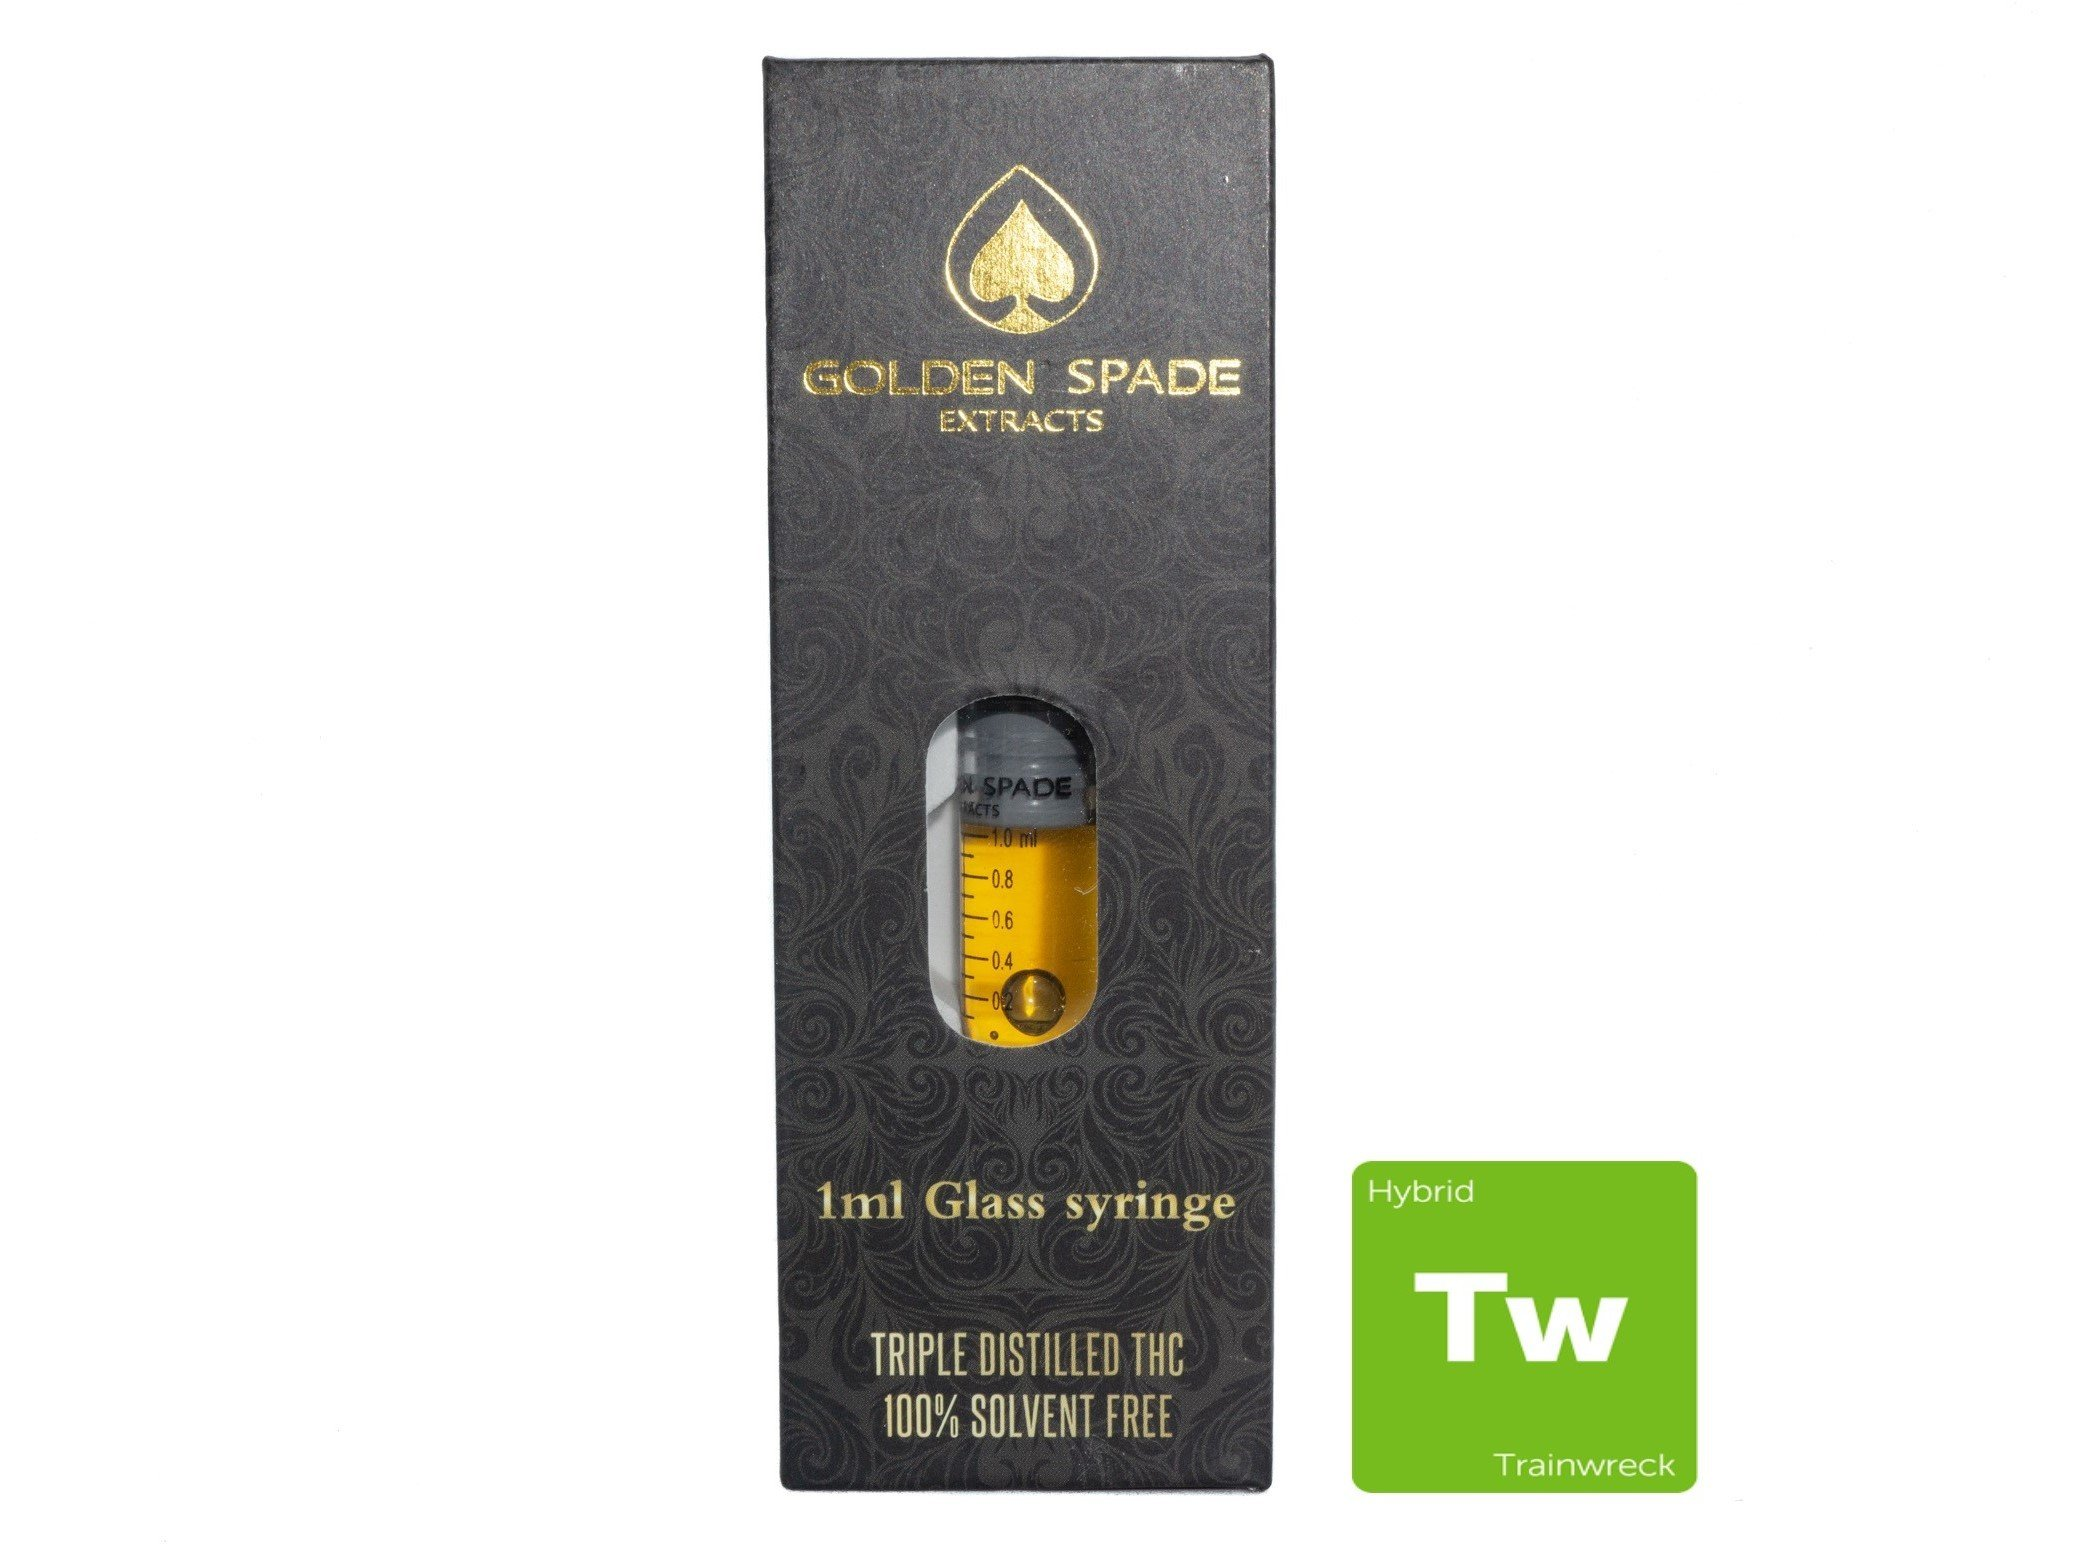 Trainwreck 1ml Syringe by Golden Spade Extracts 01213